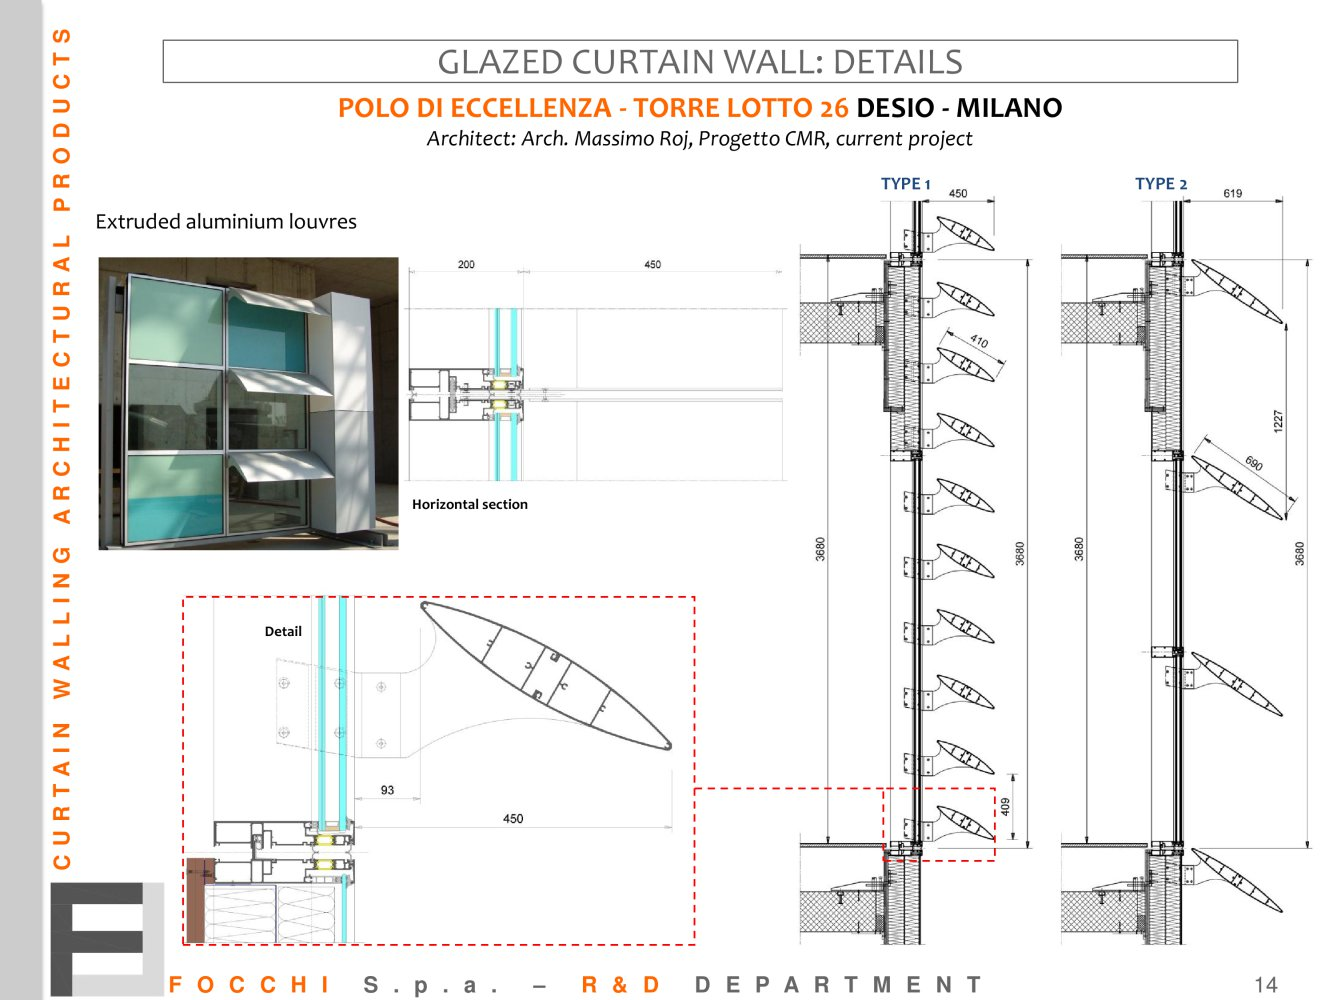 GLAZED CURTAIN WALL DETAILS